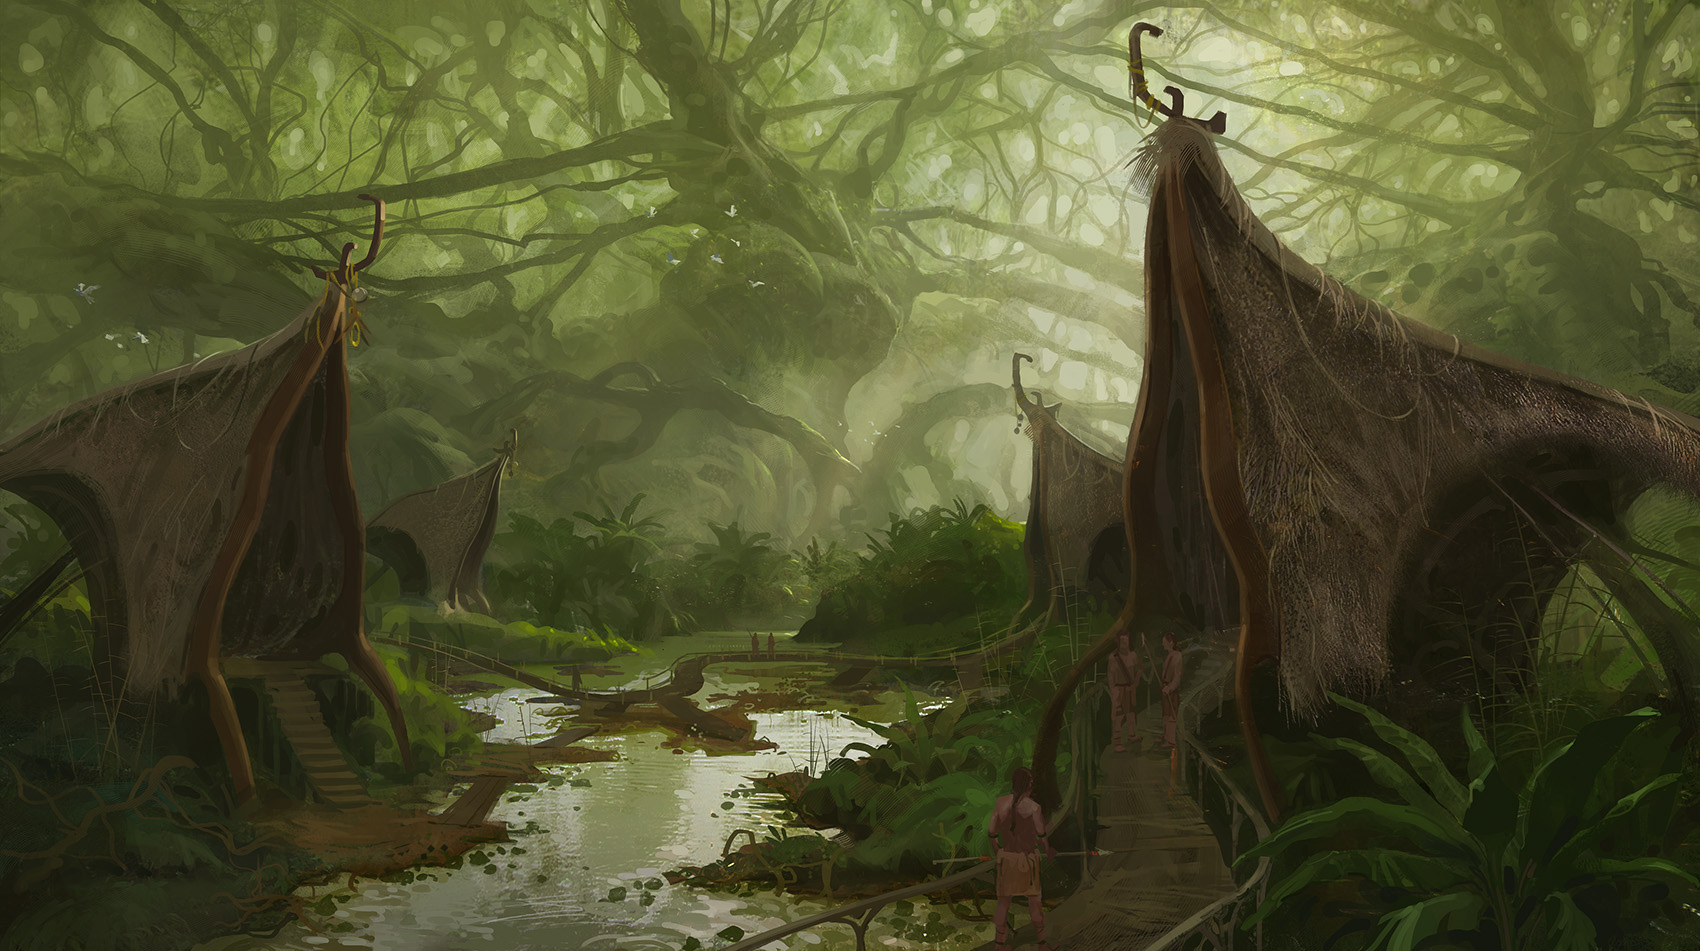 Jungle Village by Sanchiko